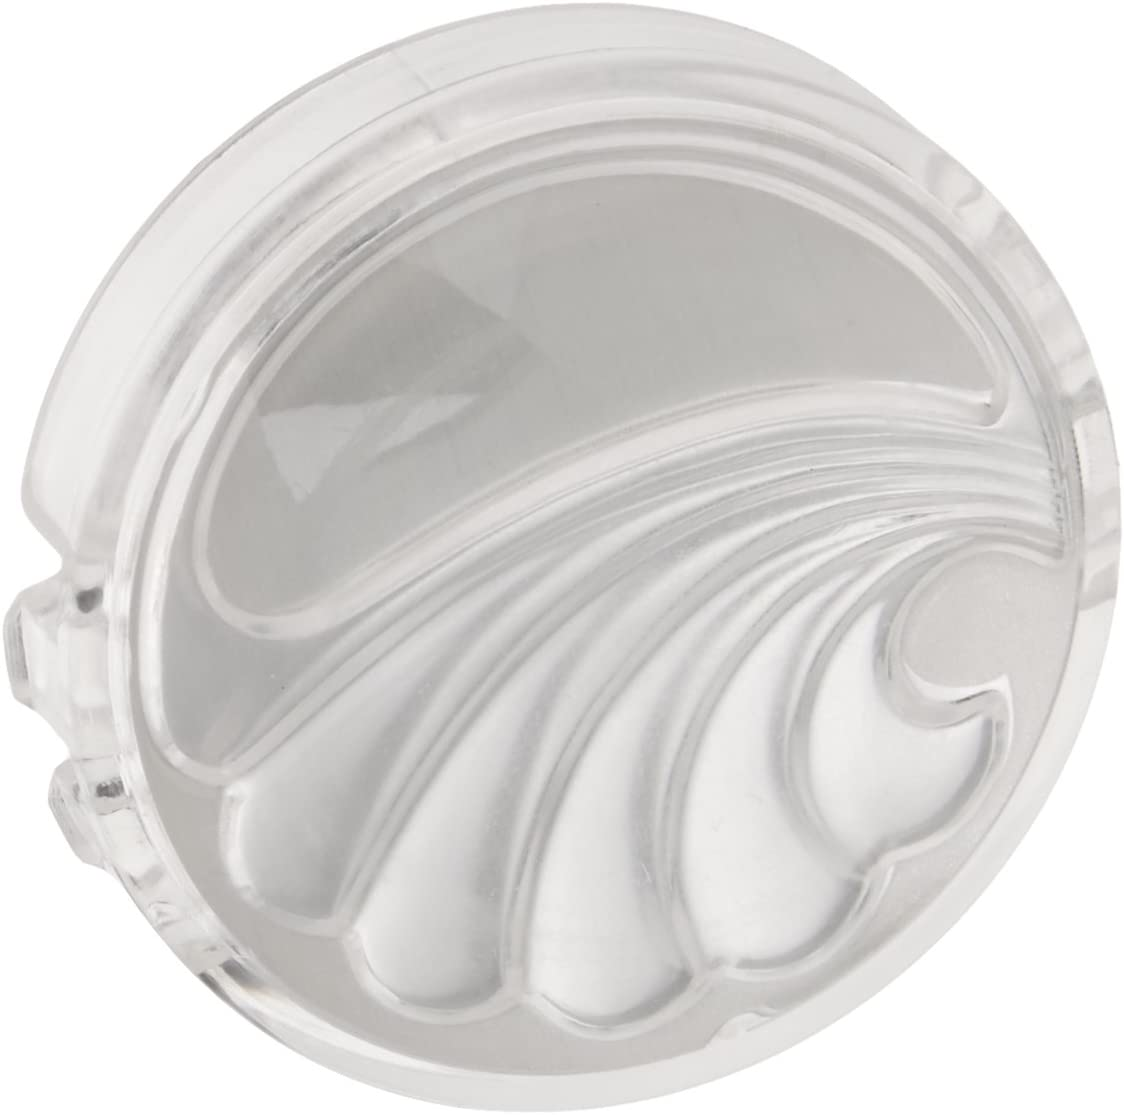 80970 Snap Index Button Acrylic for Use with Delta 1-Handle Faucets 1-5//16 in Dia Inc Danco Plastic